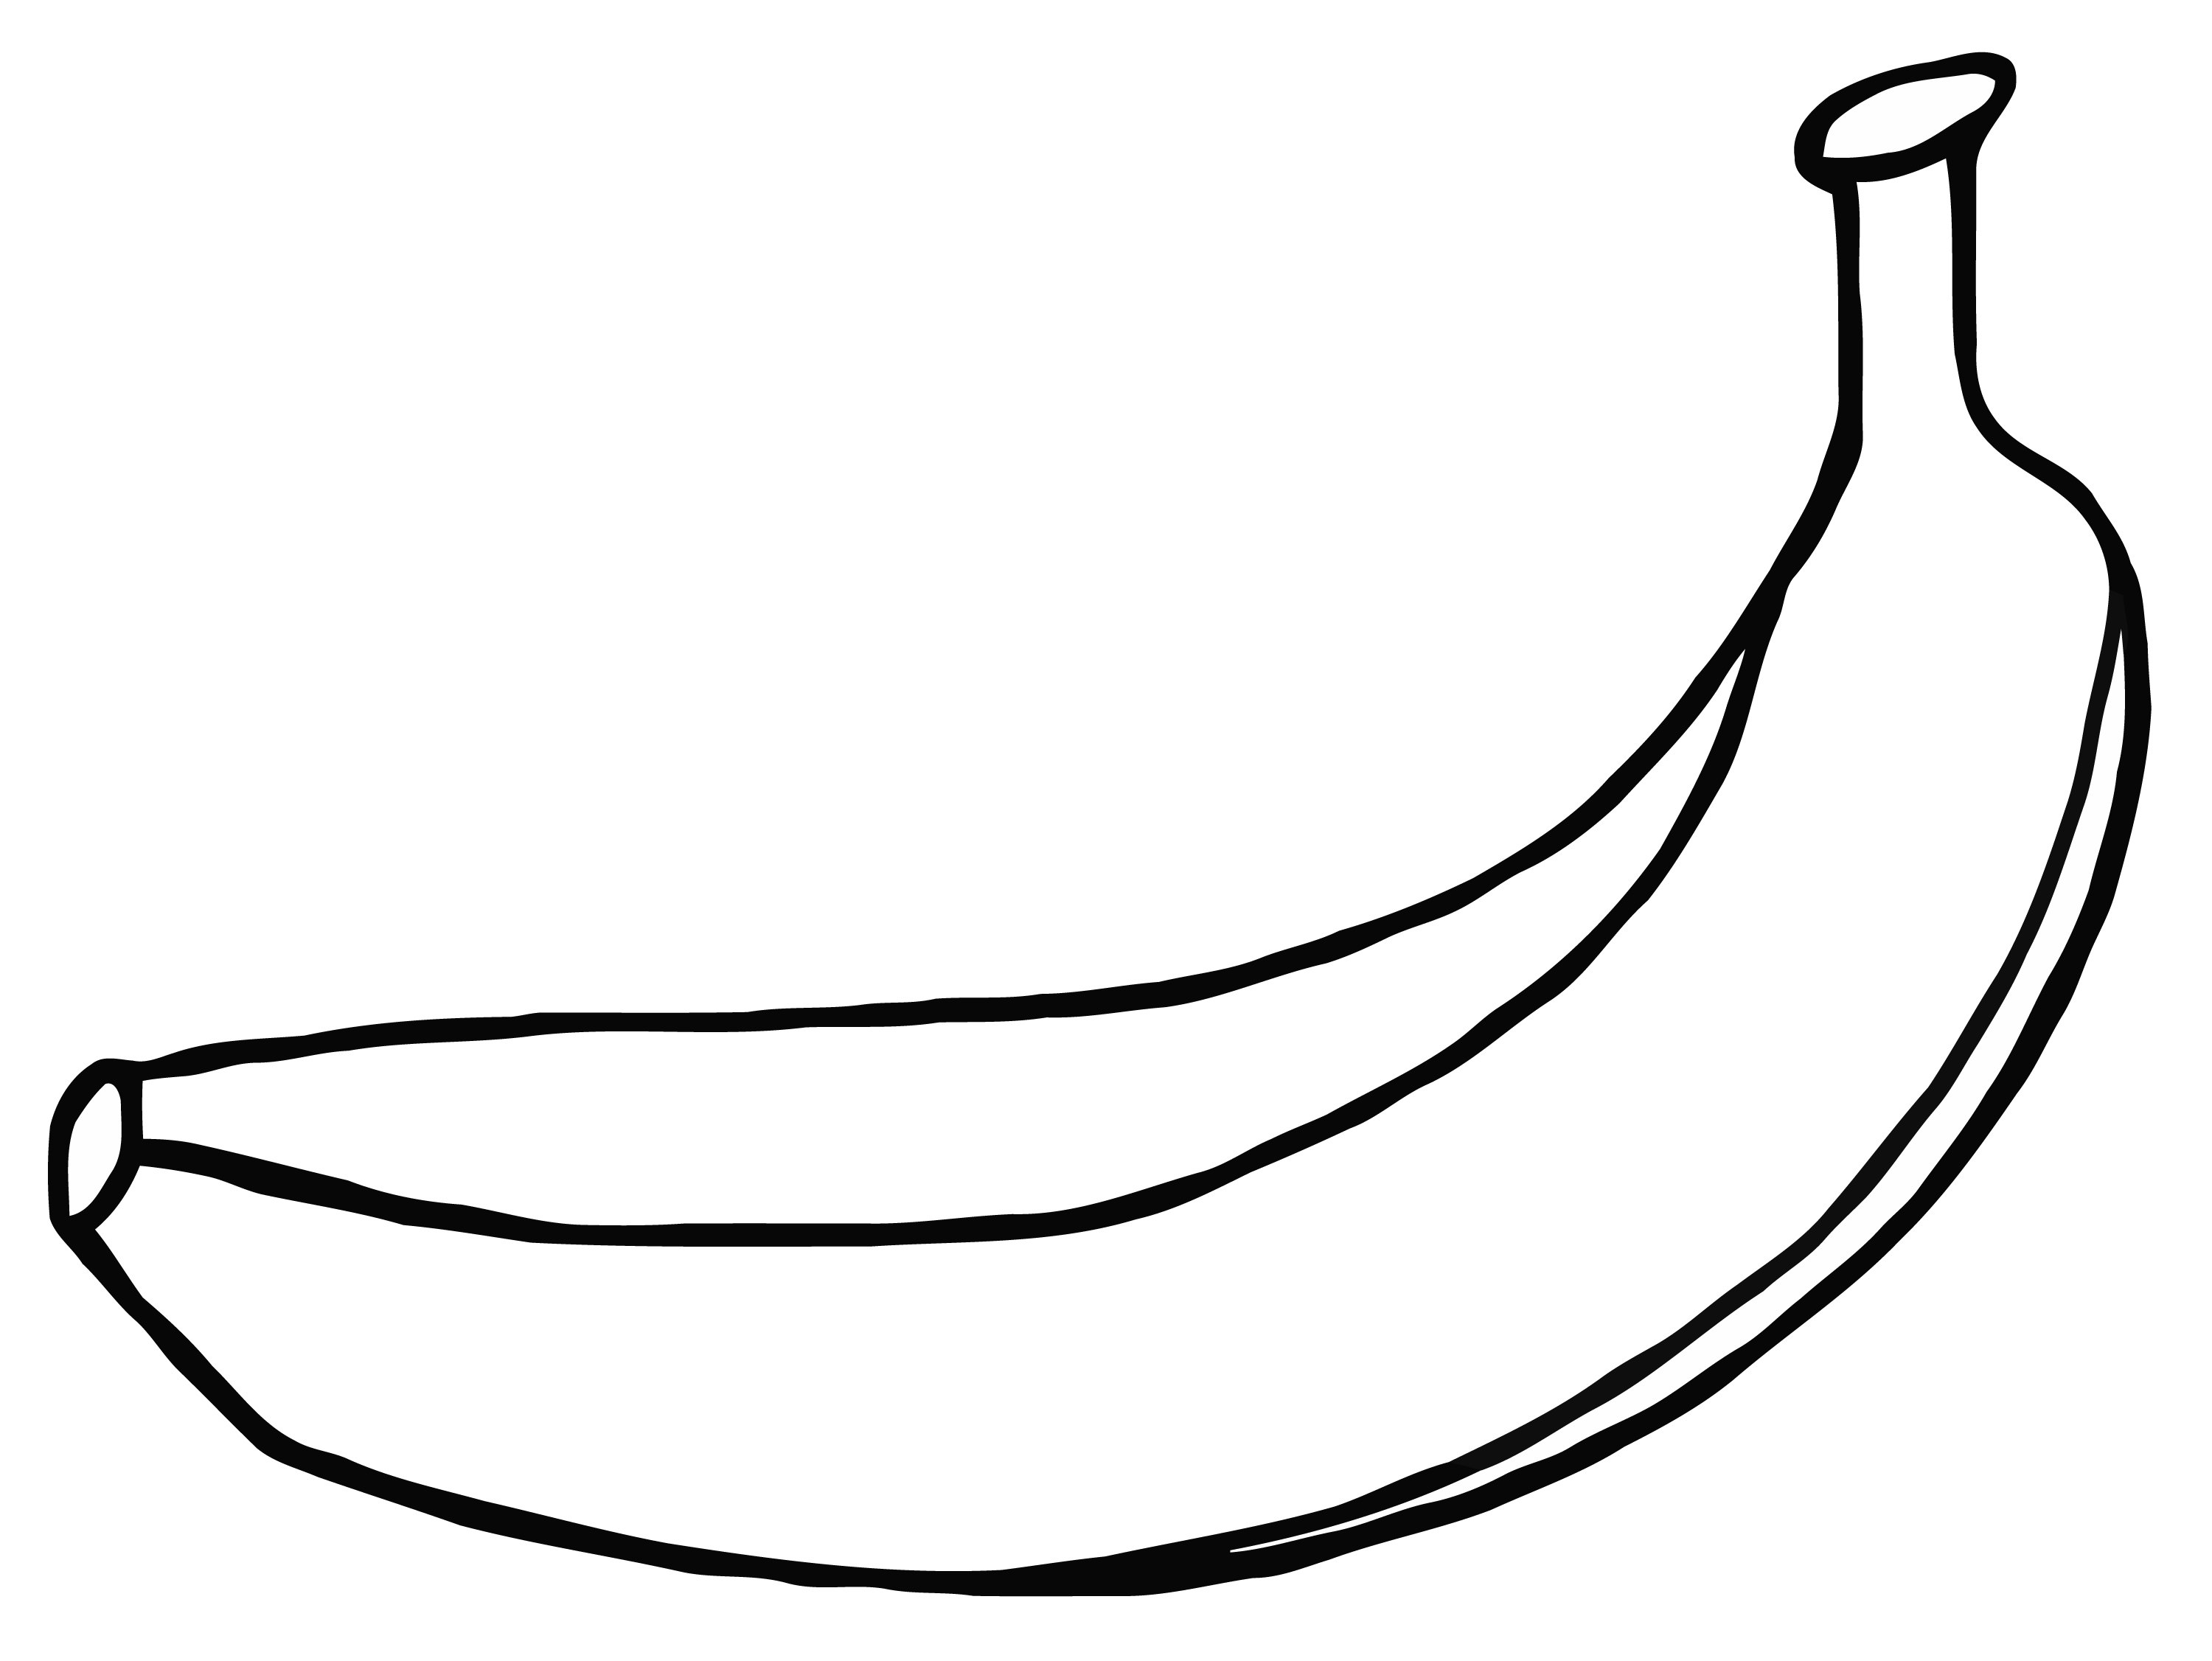 Outline at getdrawings com. Banana clipart banana drawing picture transparent download